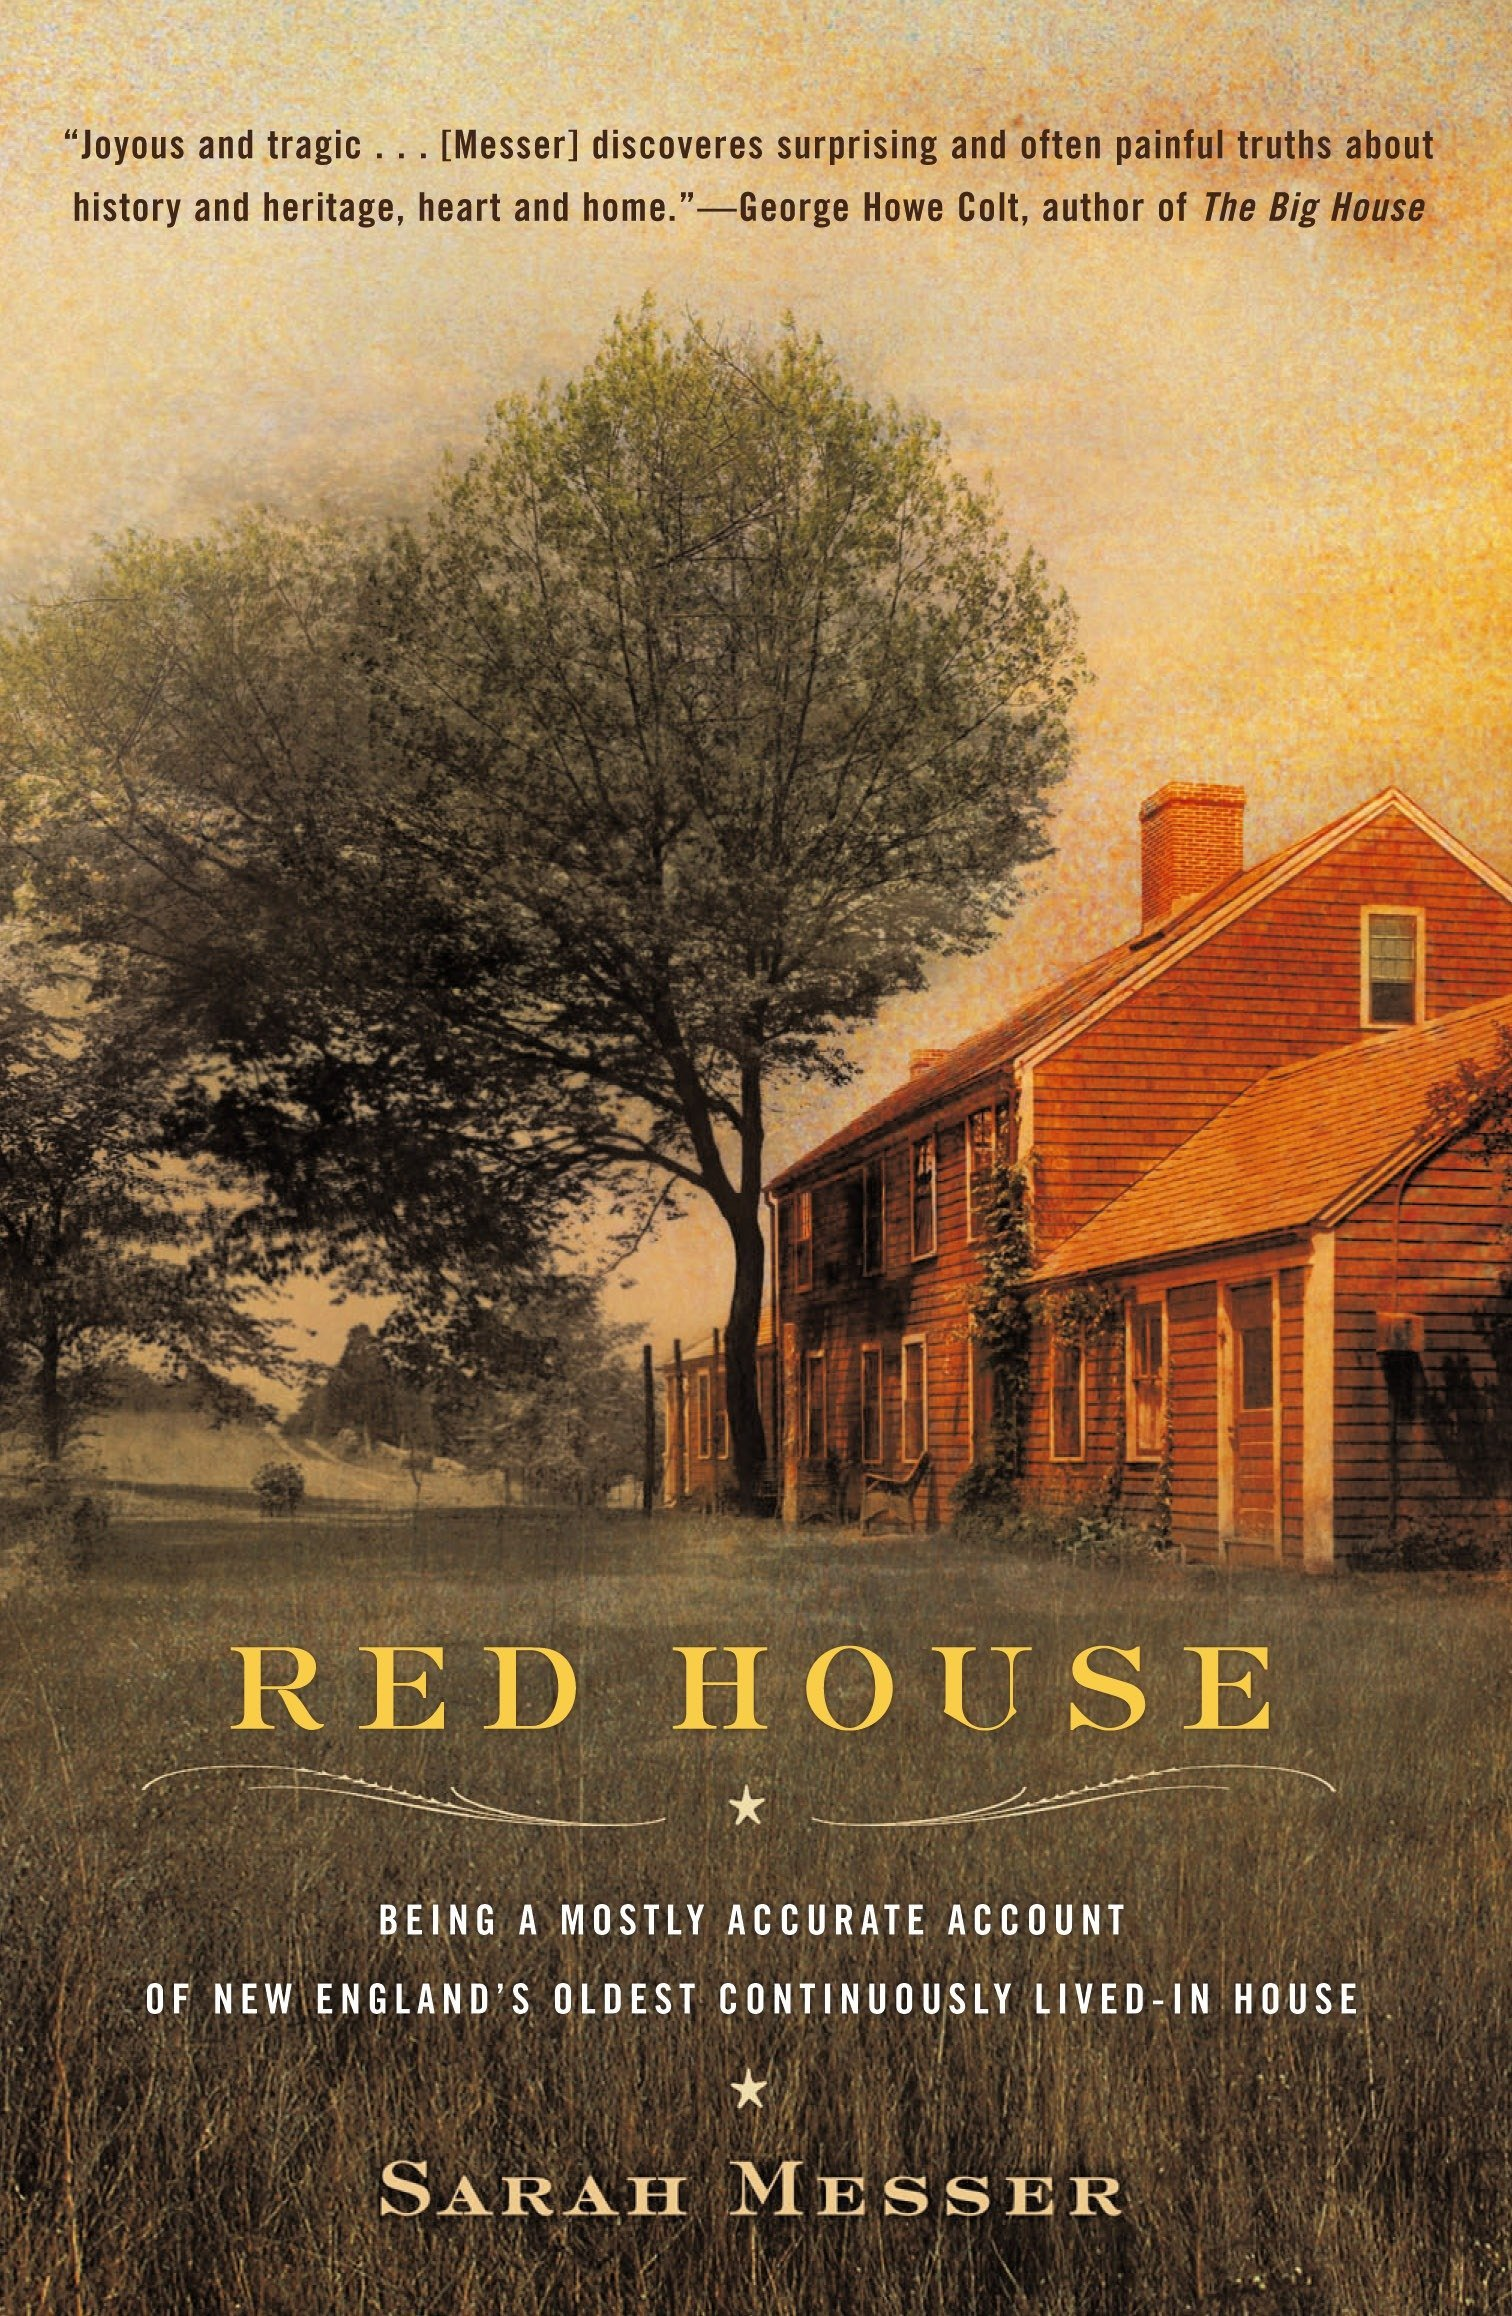 Red House: Being a Mostly Accurate Account of New England's